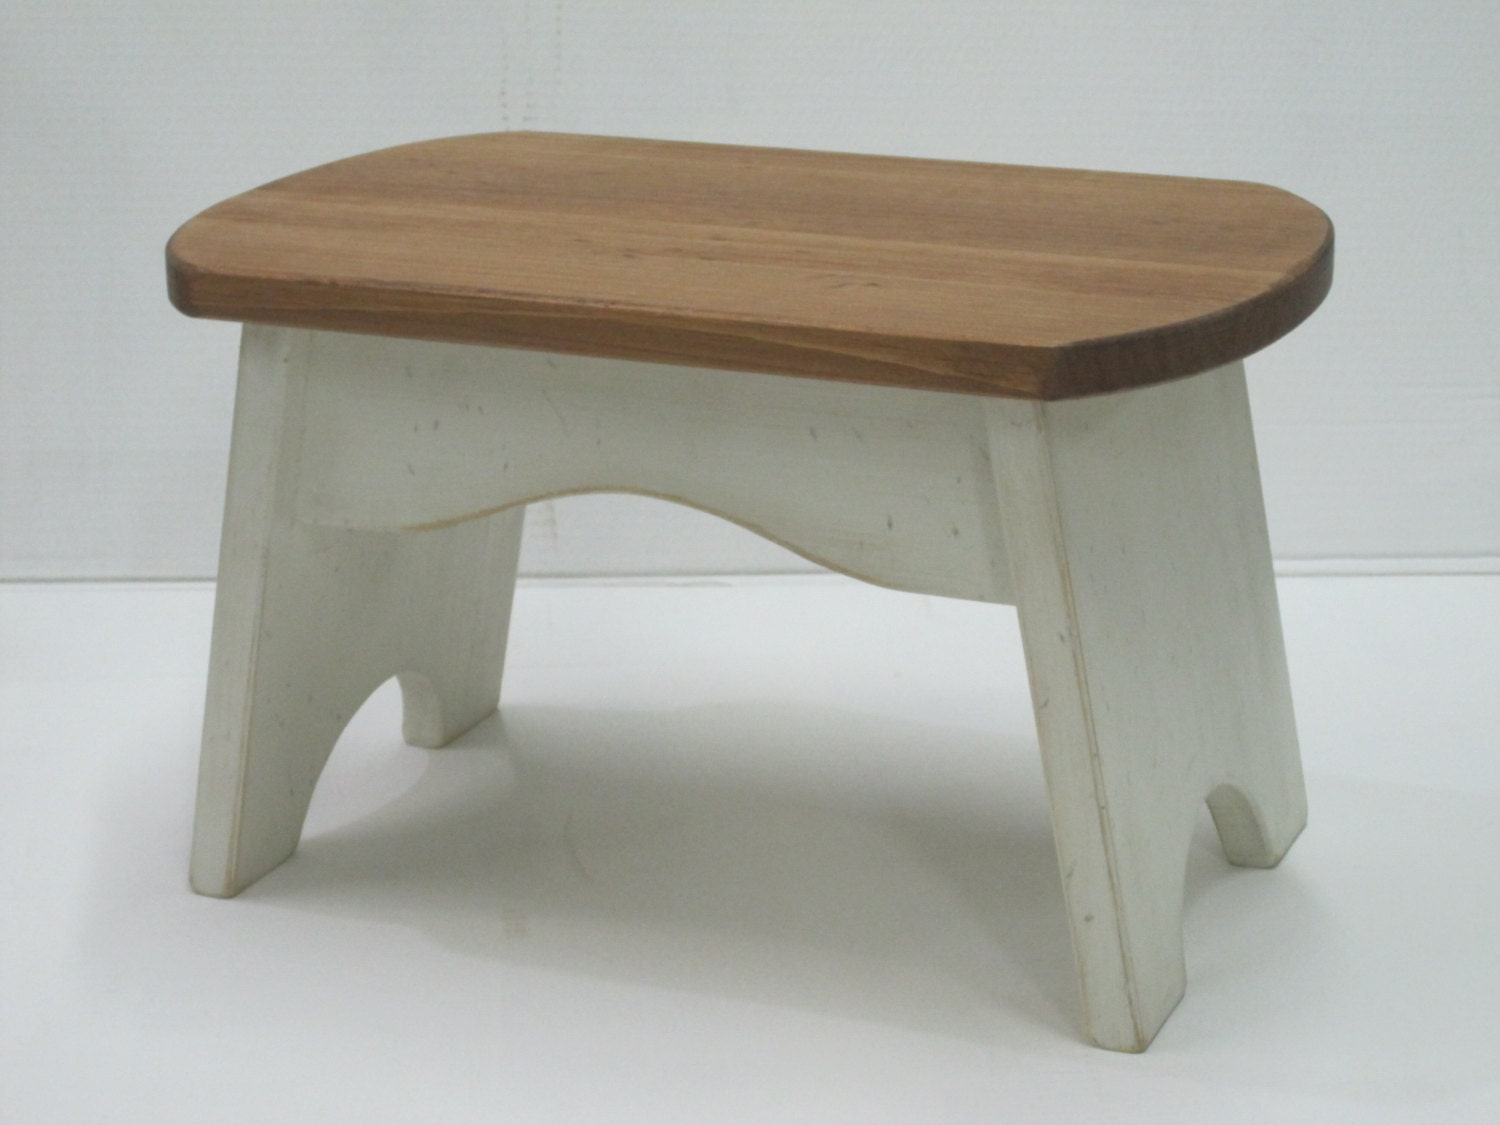 Wooden step stool for kids foot small